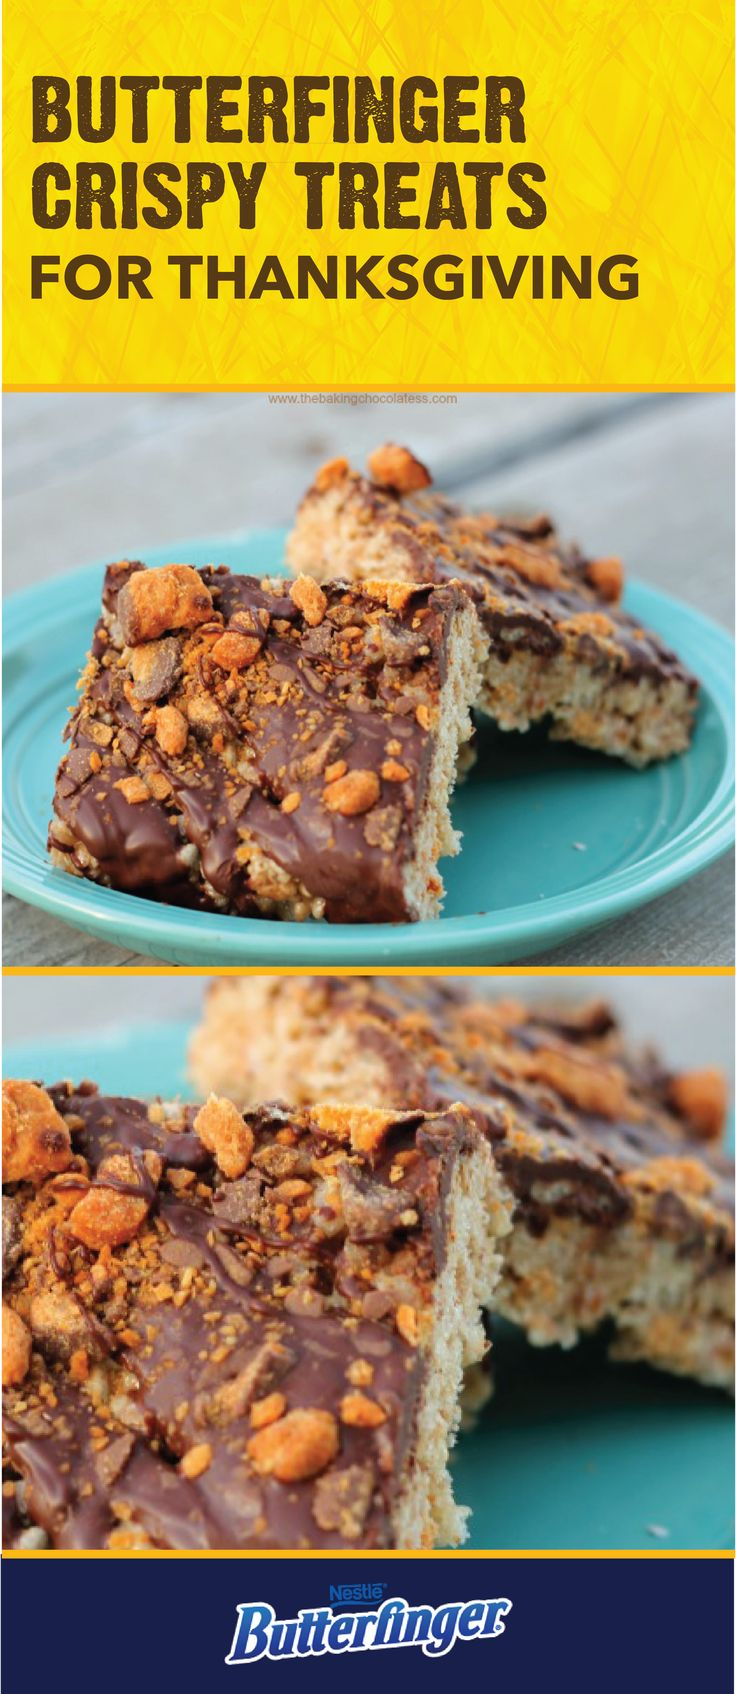 There's no better way to celebrate fall than with the crispety, crunchety, peanut-buttery taste of these Butterfinger Rice Cereal Treats. Start by combining rice cereal, mini marshmallows, and peanut butter into a sweet no-bake treat. Then, top with a layer of melted chocolate chips and BUTTERFINGER® Bites. Click here to see the full dessert recipe.